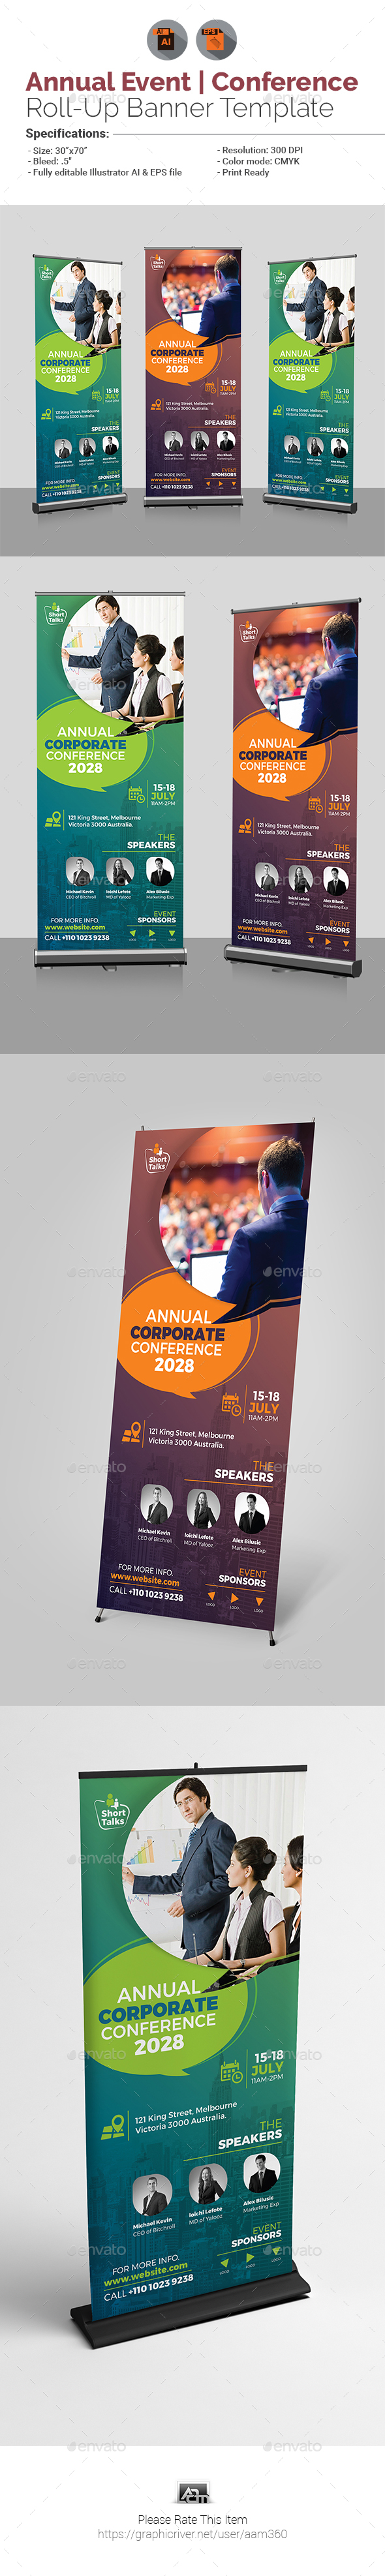 Annual Corporate Conference Roll-Up Banner Template - Signage Print Templates